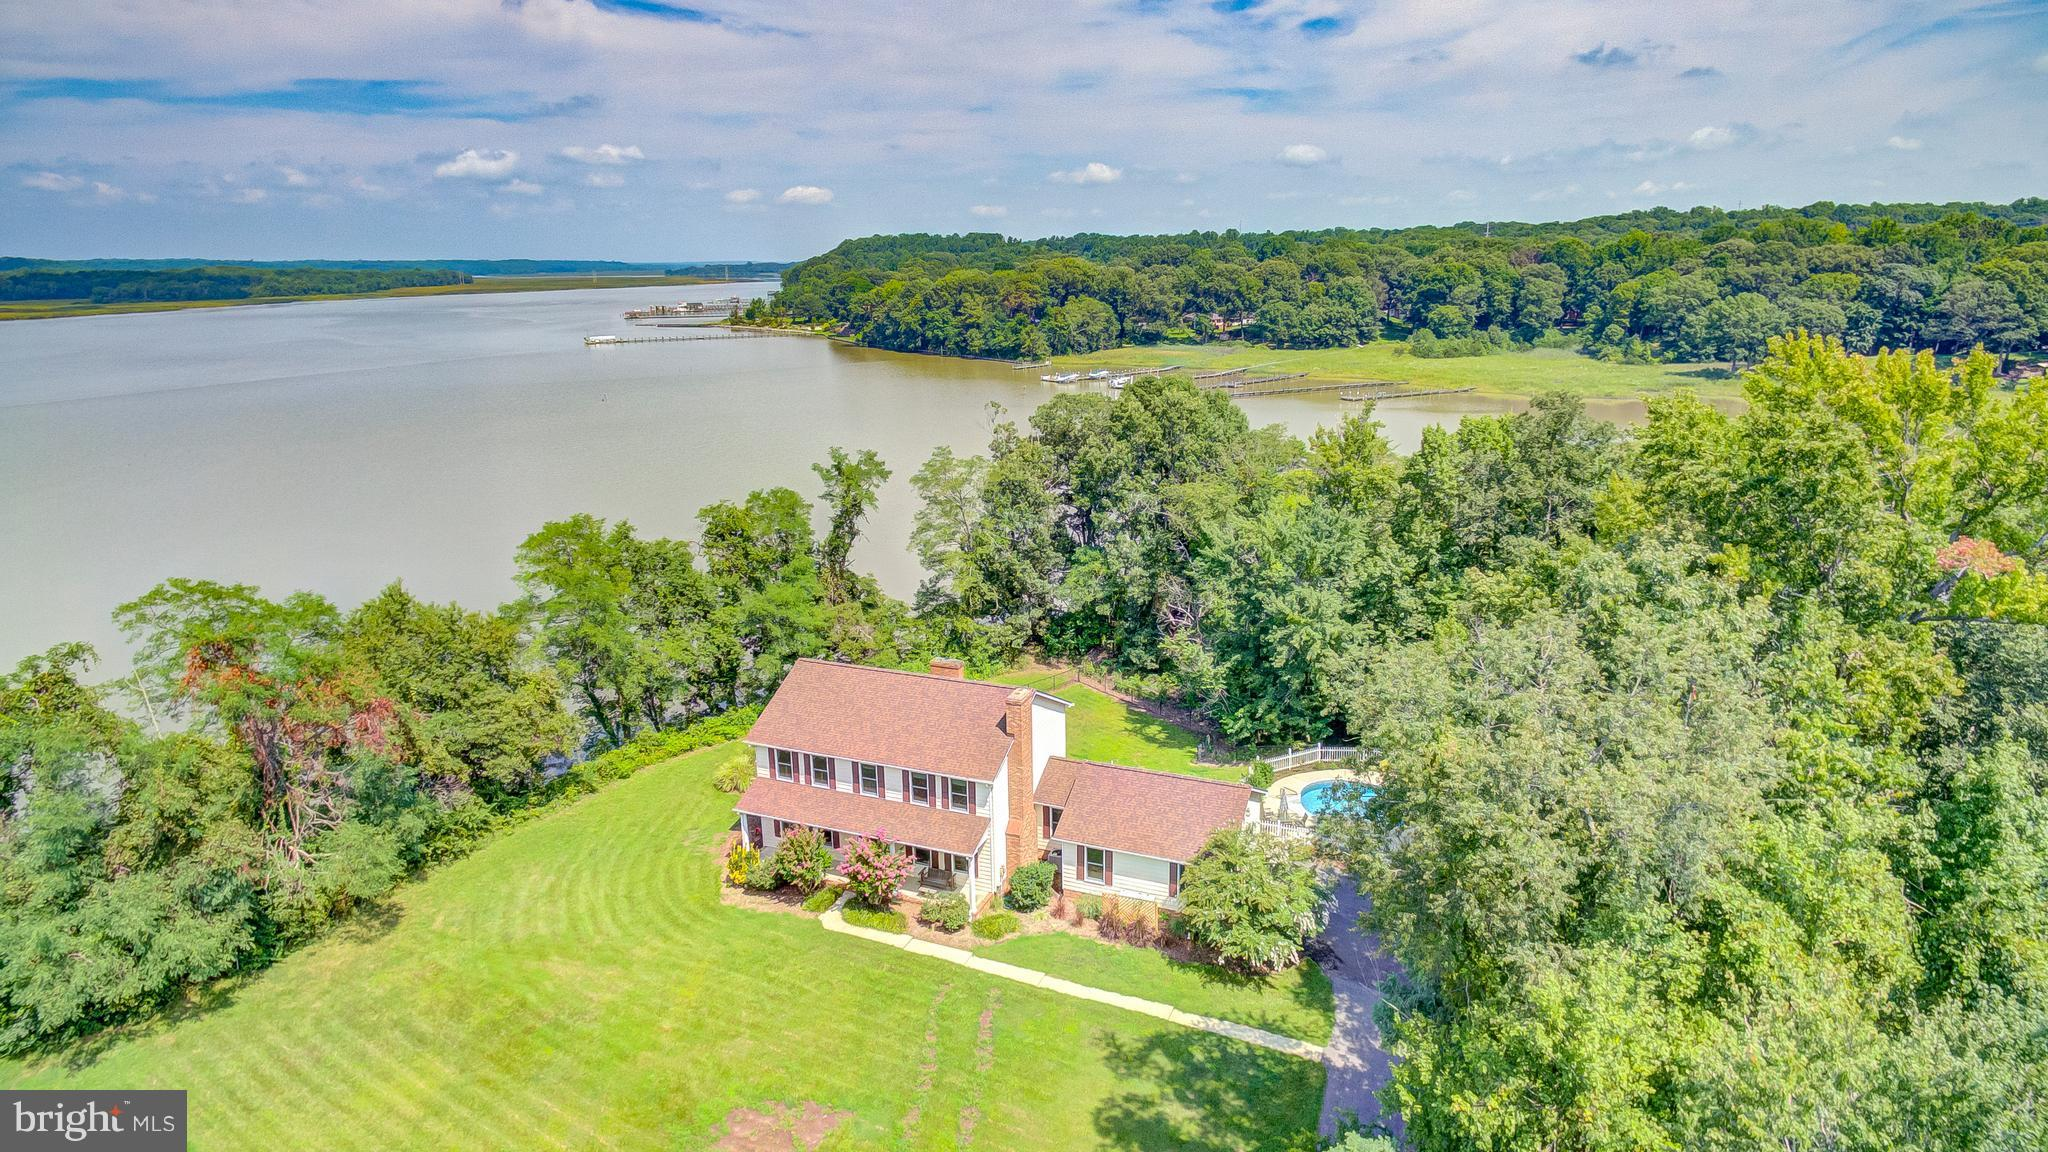 3551 DEEP LANDING ROAD, HUNTINGTOWN, MD 20639